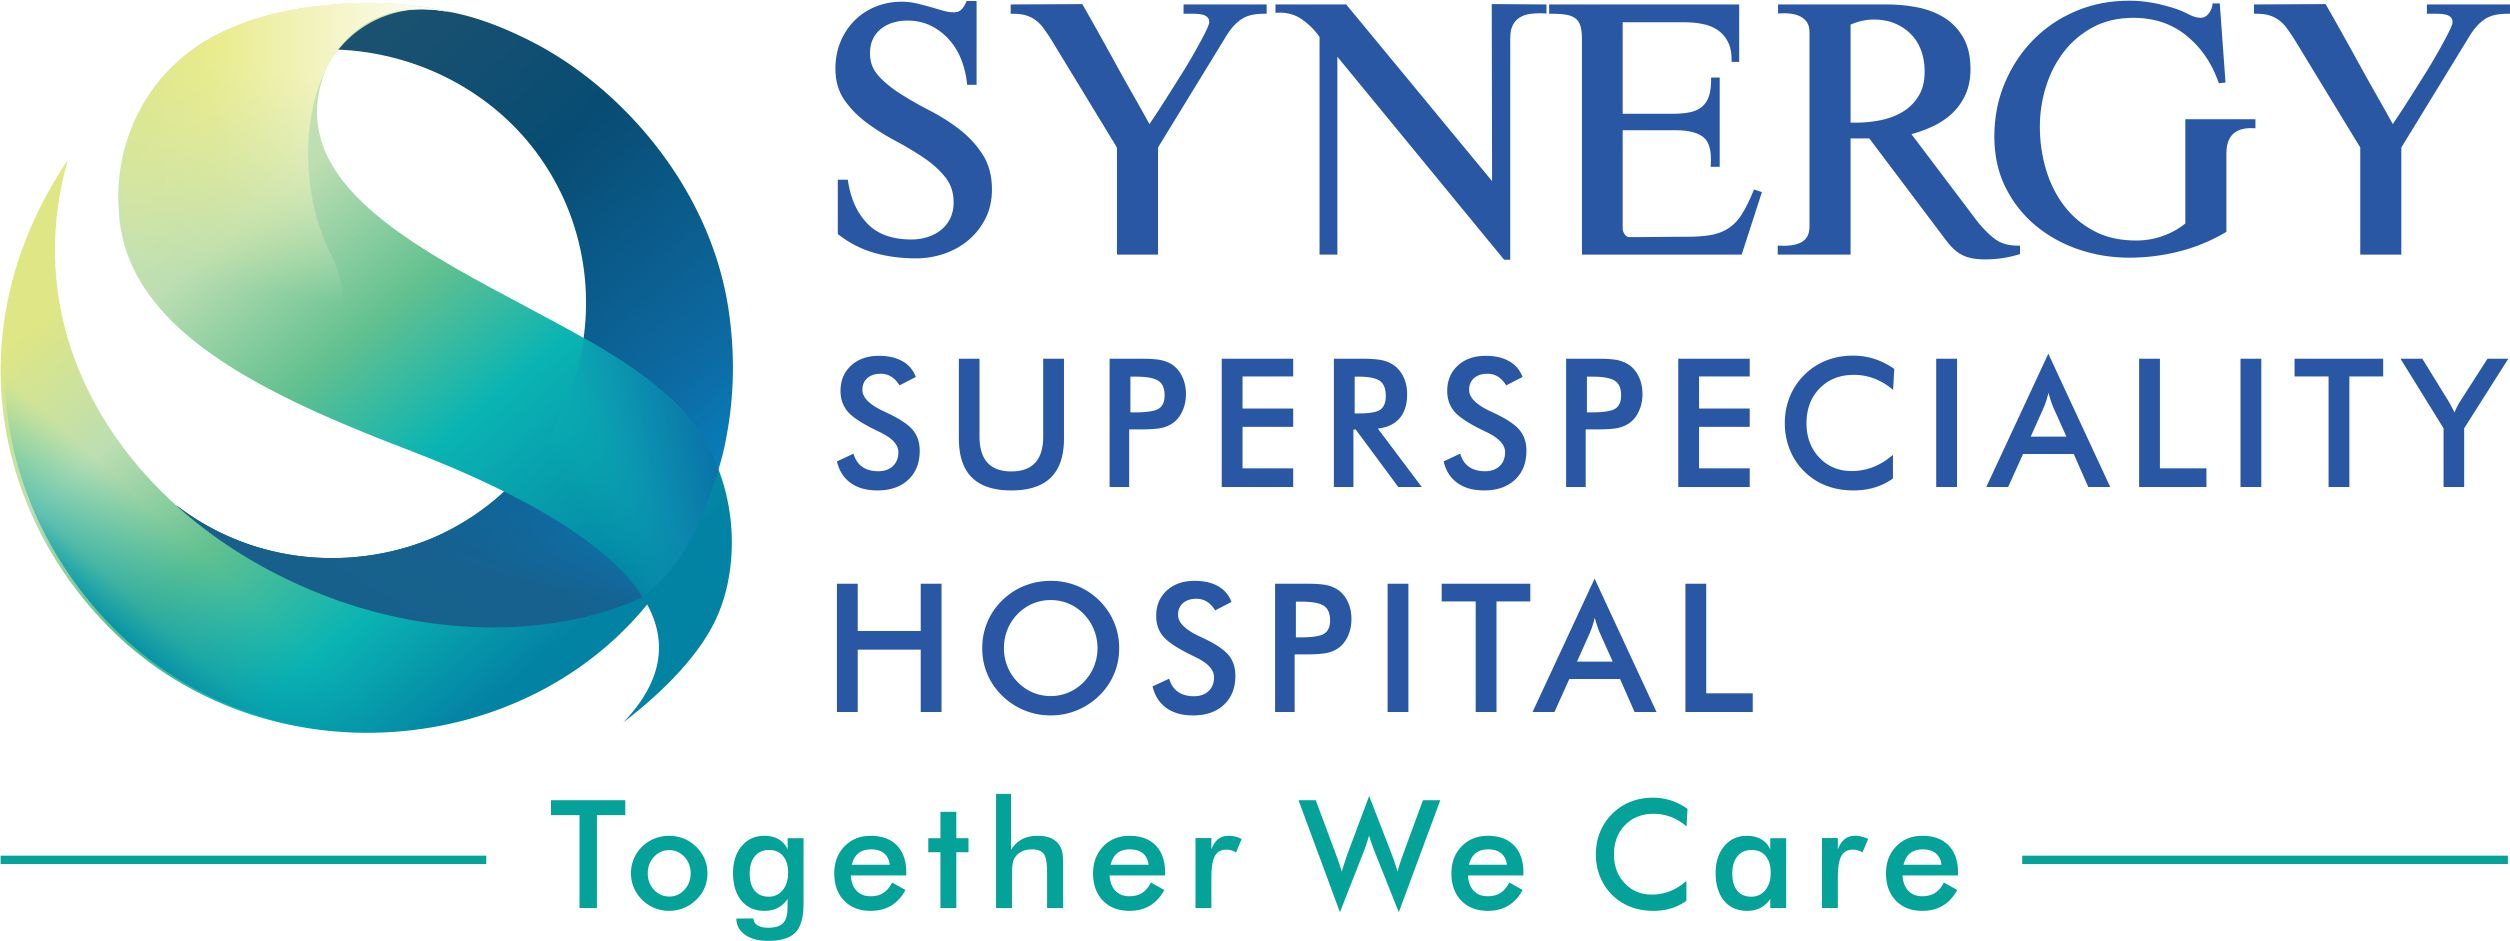 Synergy Superspeciality Hospital